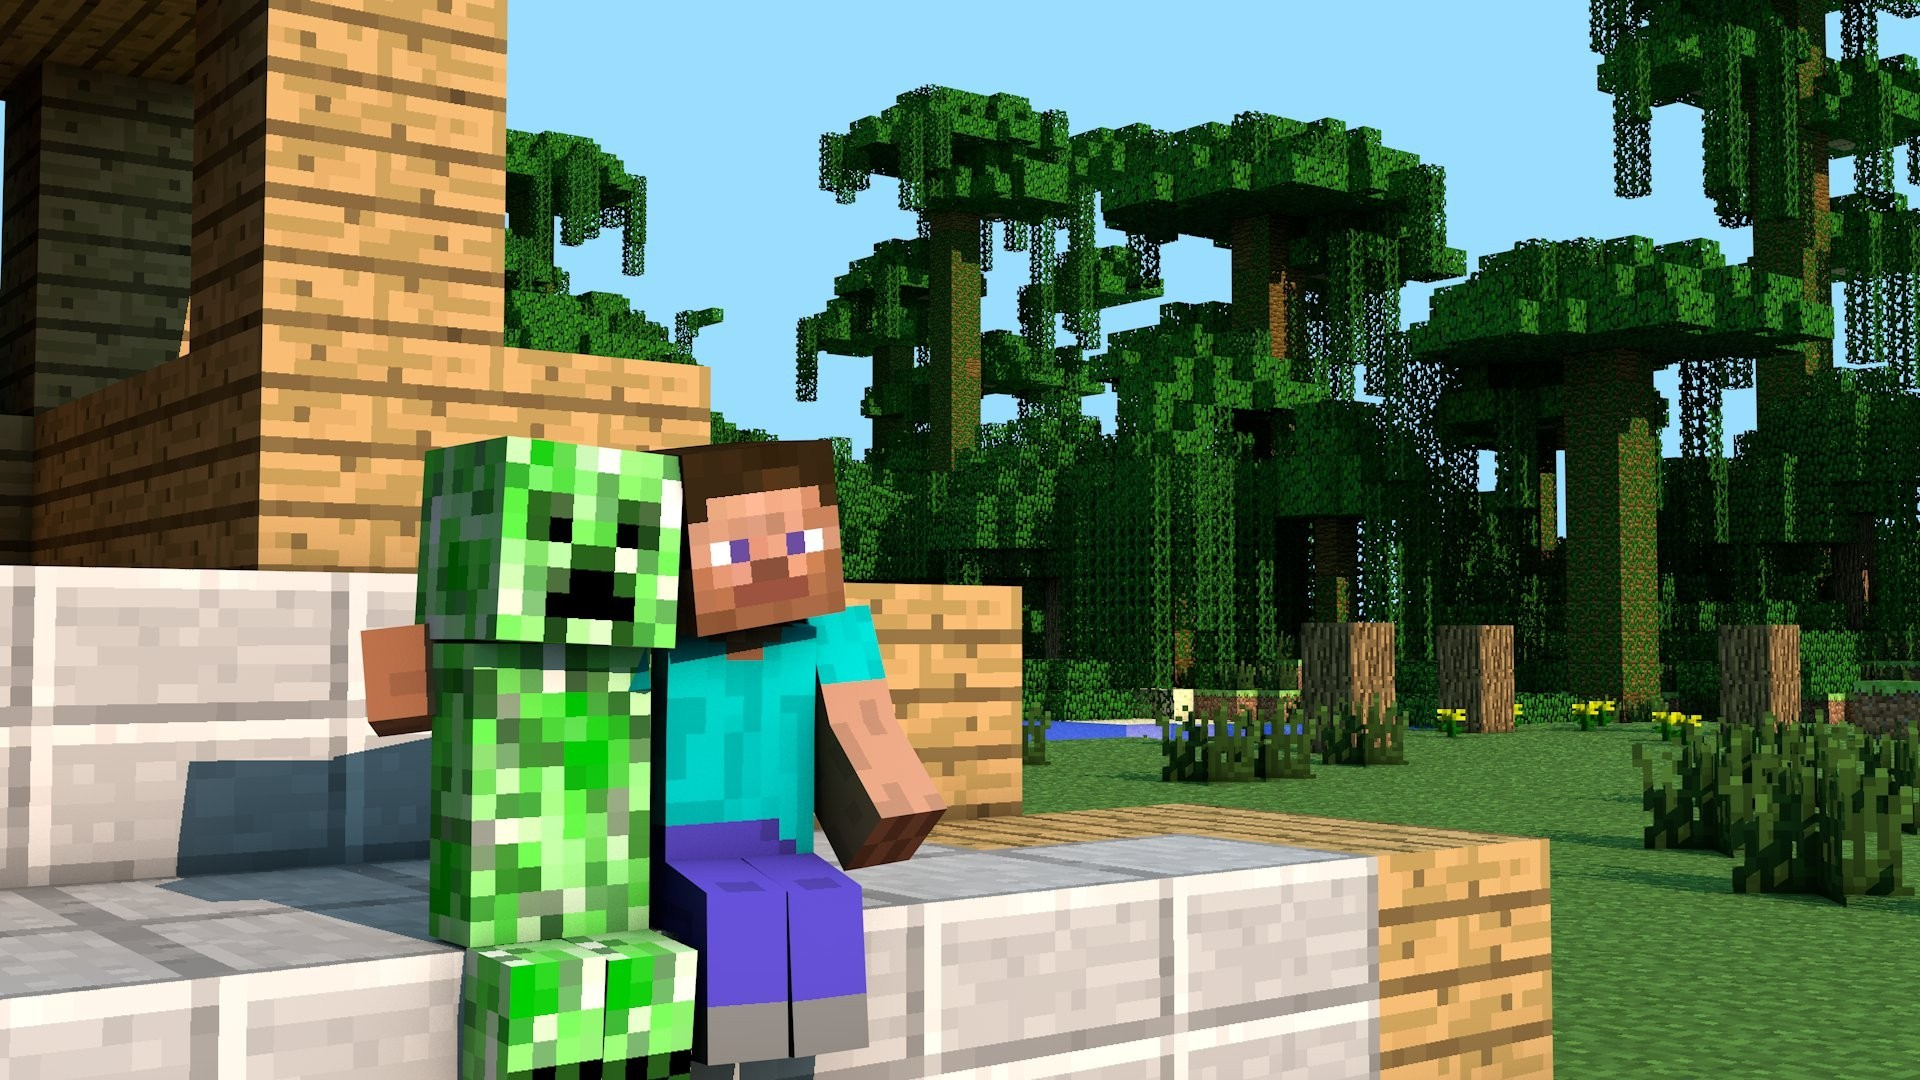 minecraft hd desktop backgrounds 1920x1080 creeper steve 1920x1080